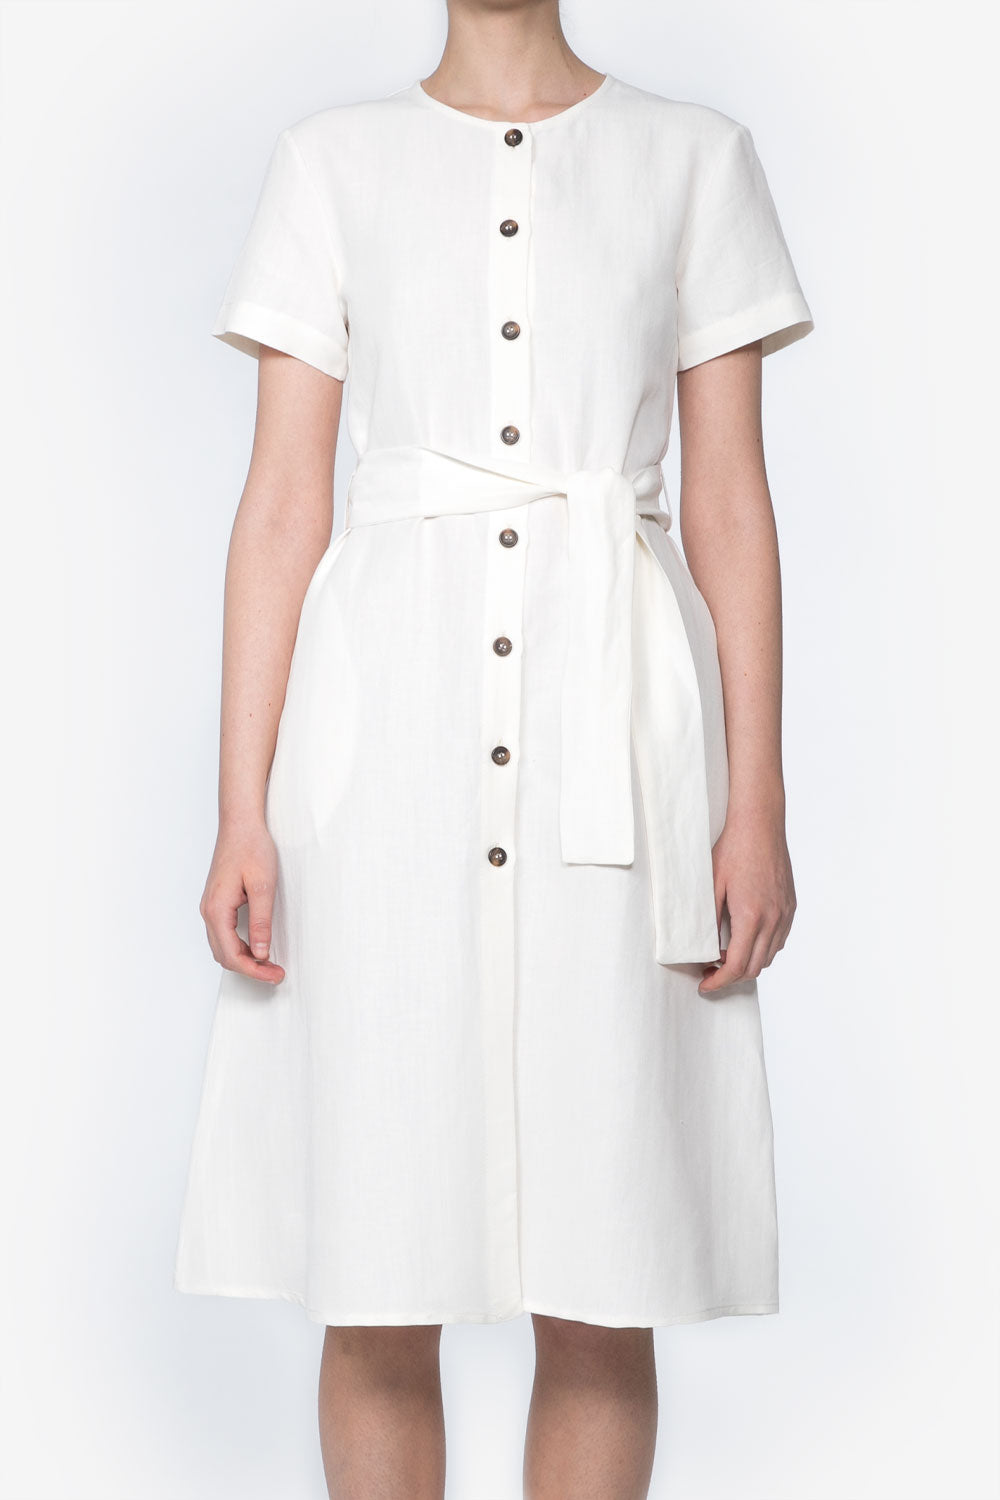 Safari Dress in White Linen